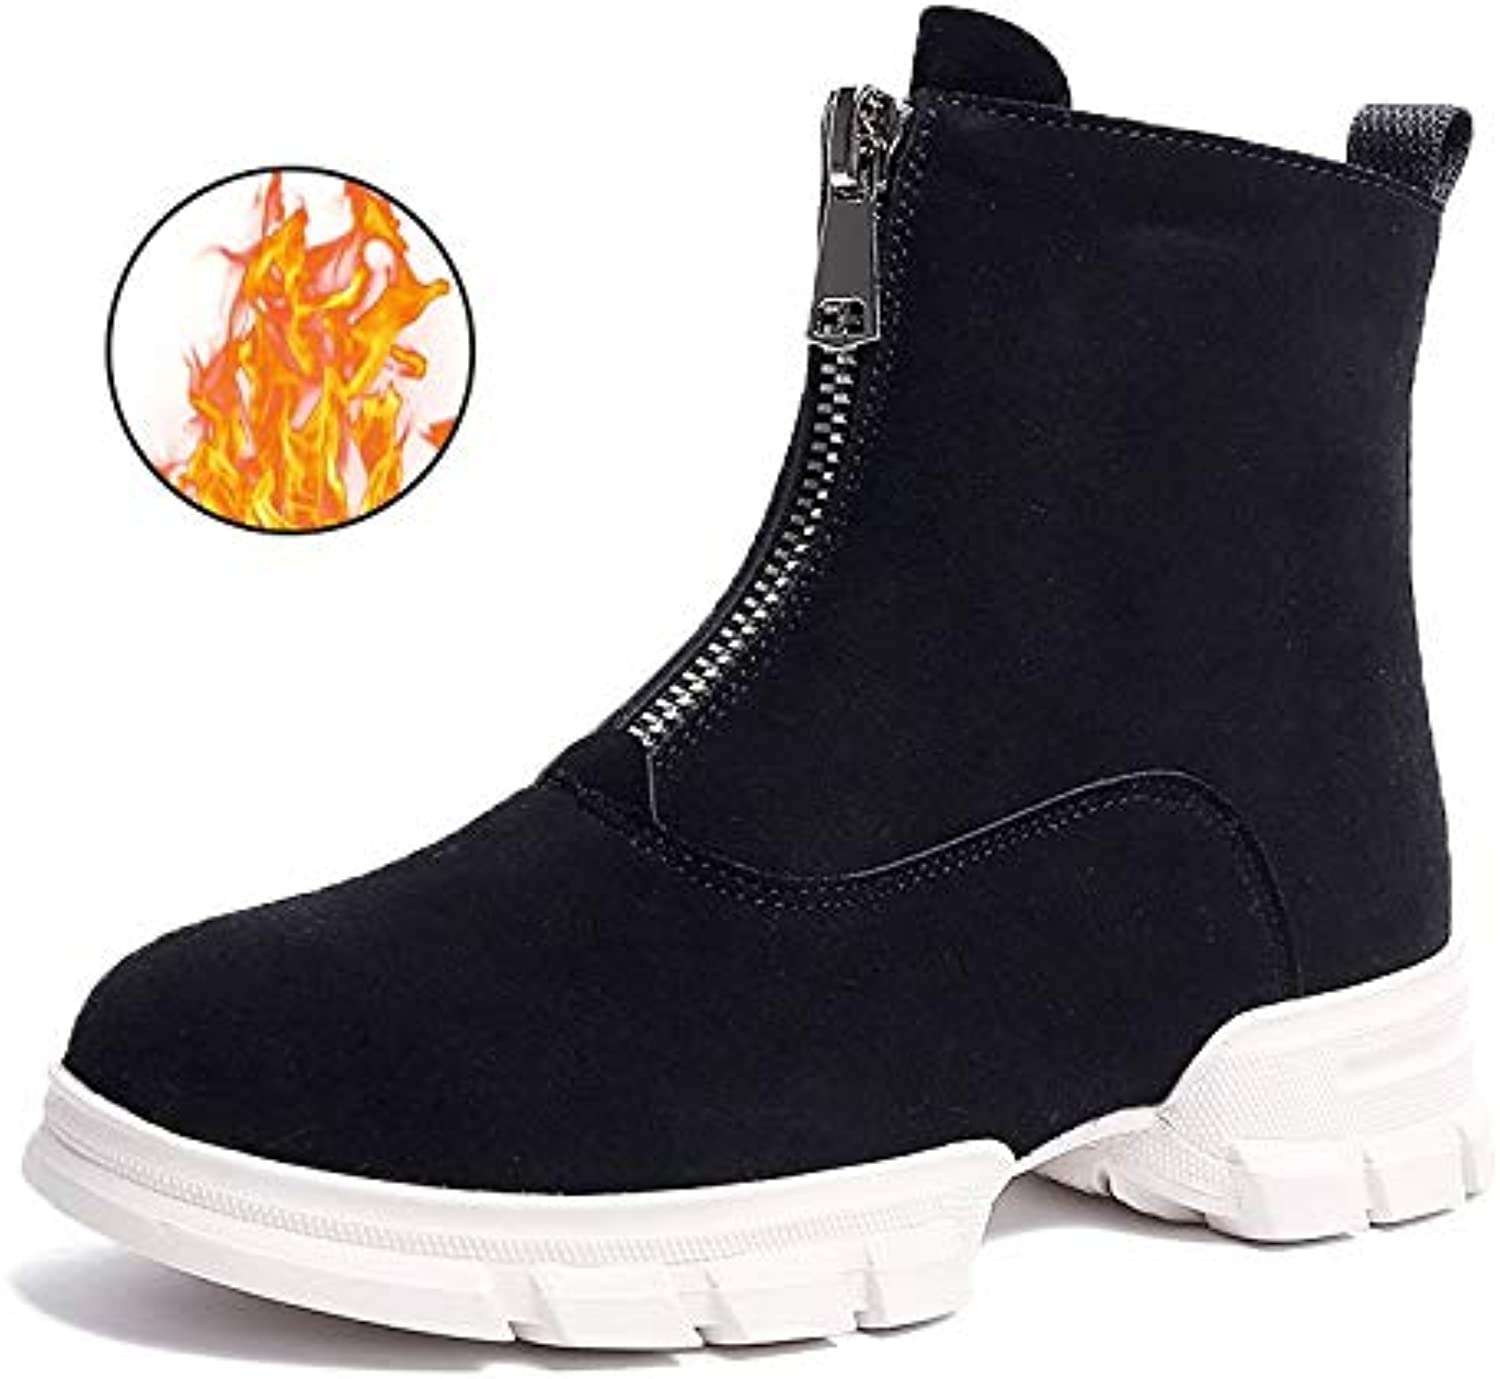 QDL1 Fujin FUJIN Brand Women Ankle Boots Winter Plush Keep Warm shoes Front and Rear Zipper Female shoes Fashion for Women shoes